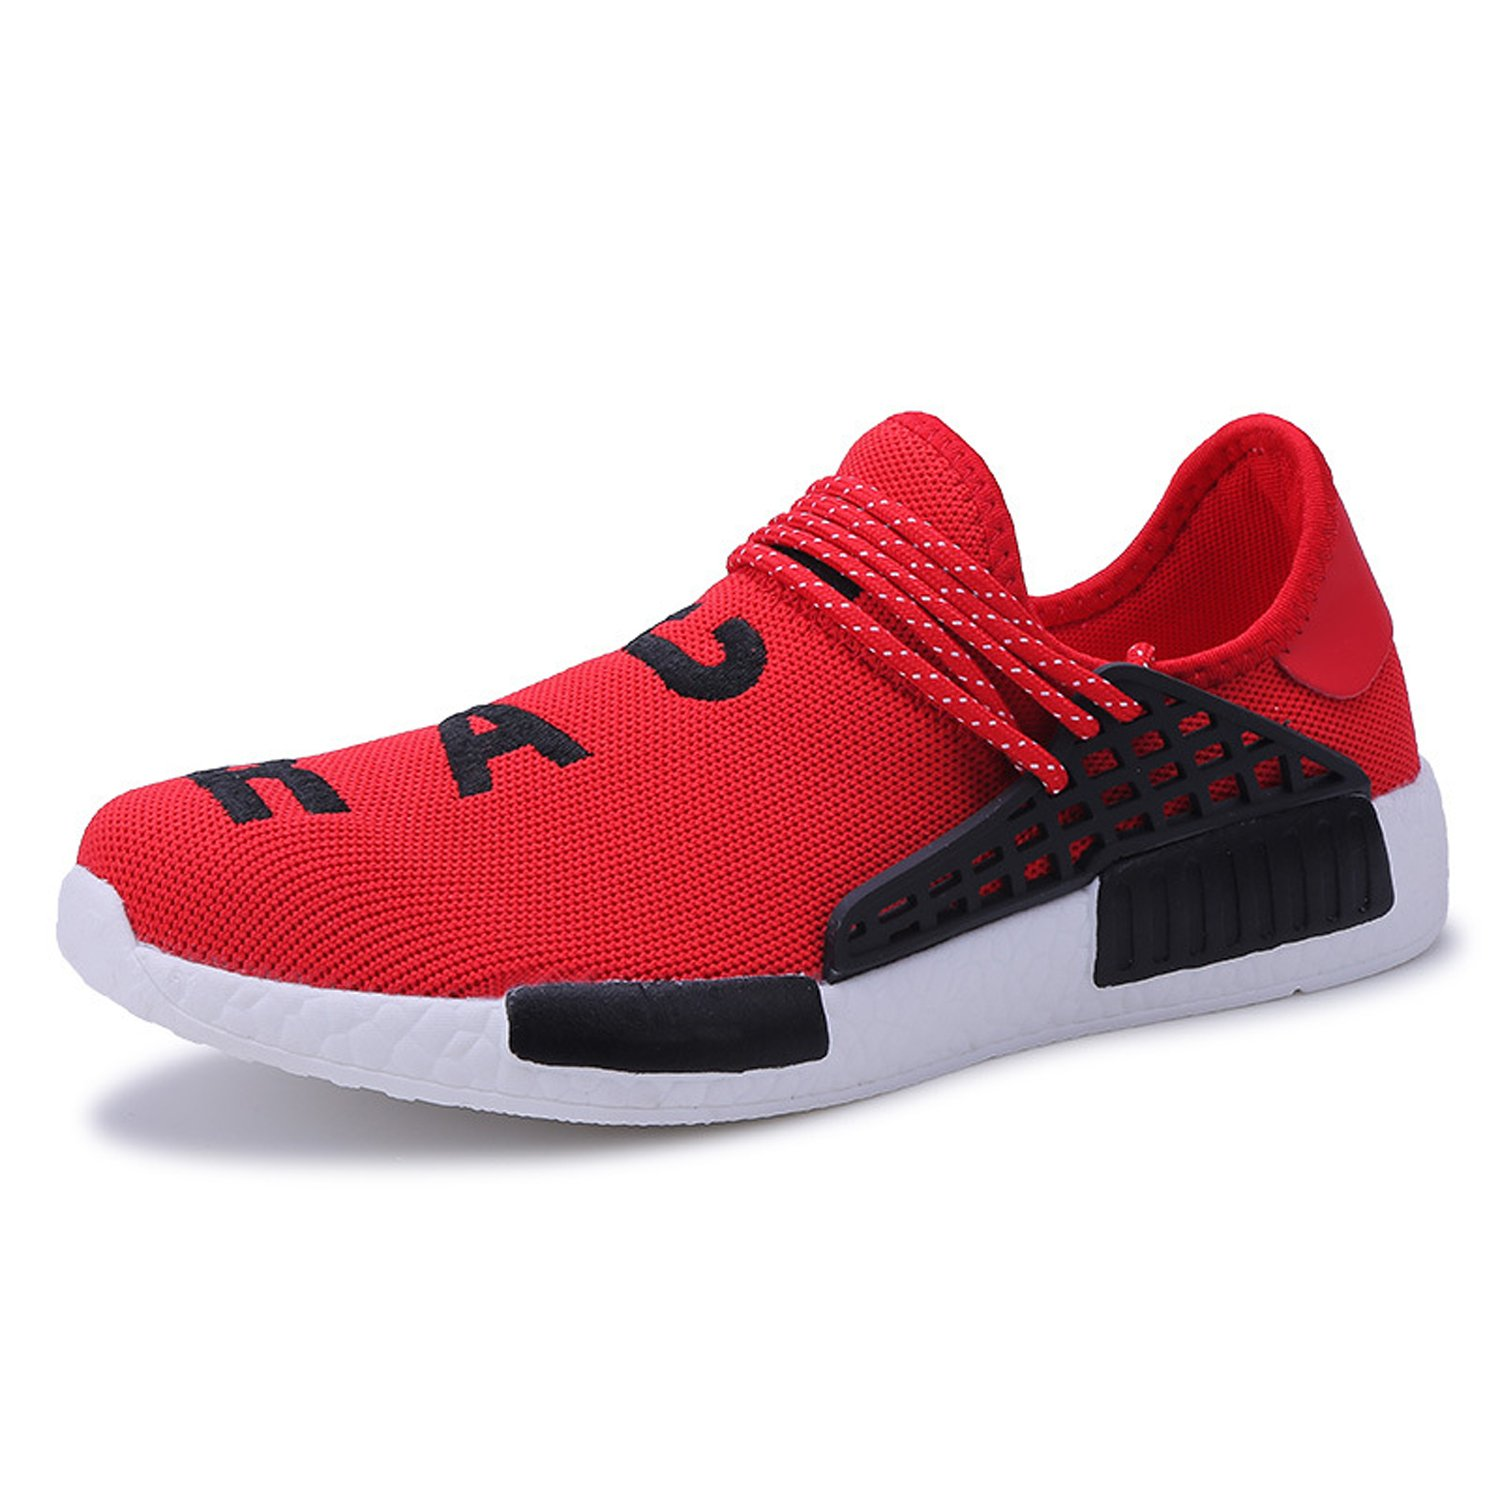 Amazon.com | Mens Womens Unisex Lightweight Fashion Sneakers Breathable Lace-up Athletic Sports Shoes Human Race Casual Running Shoes | Trail Running